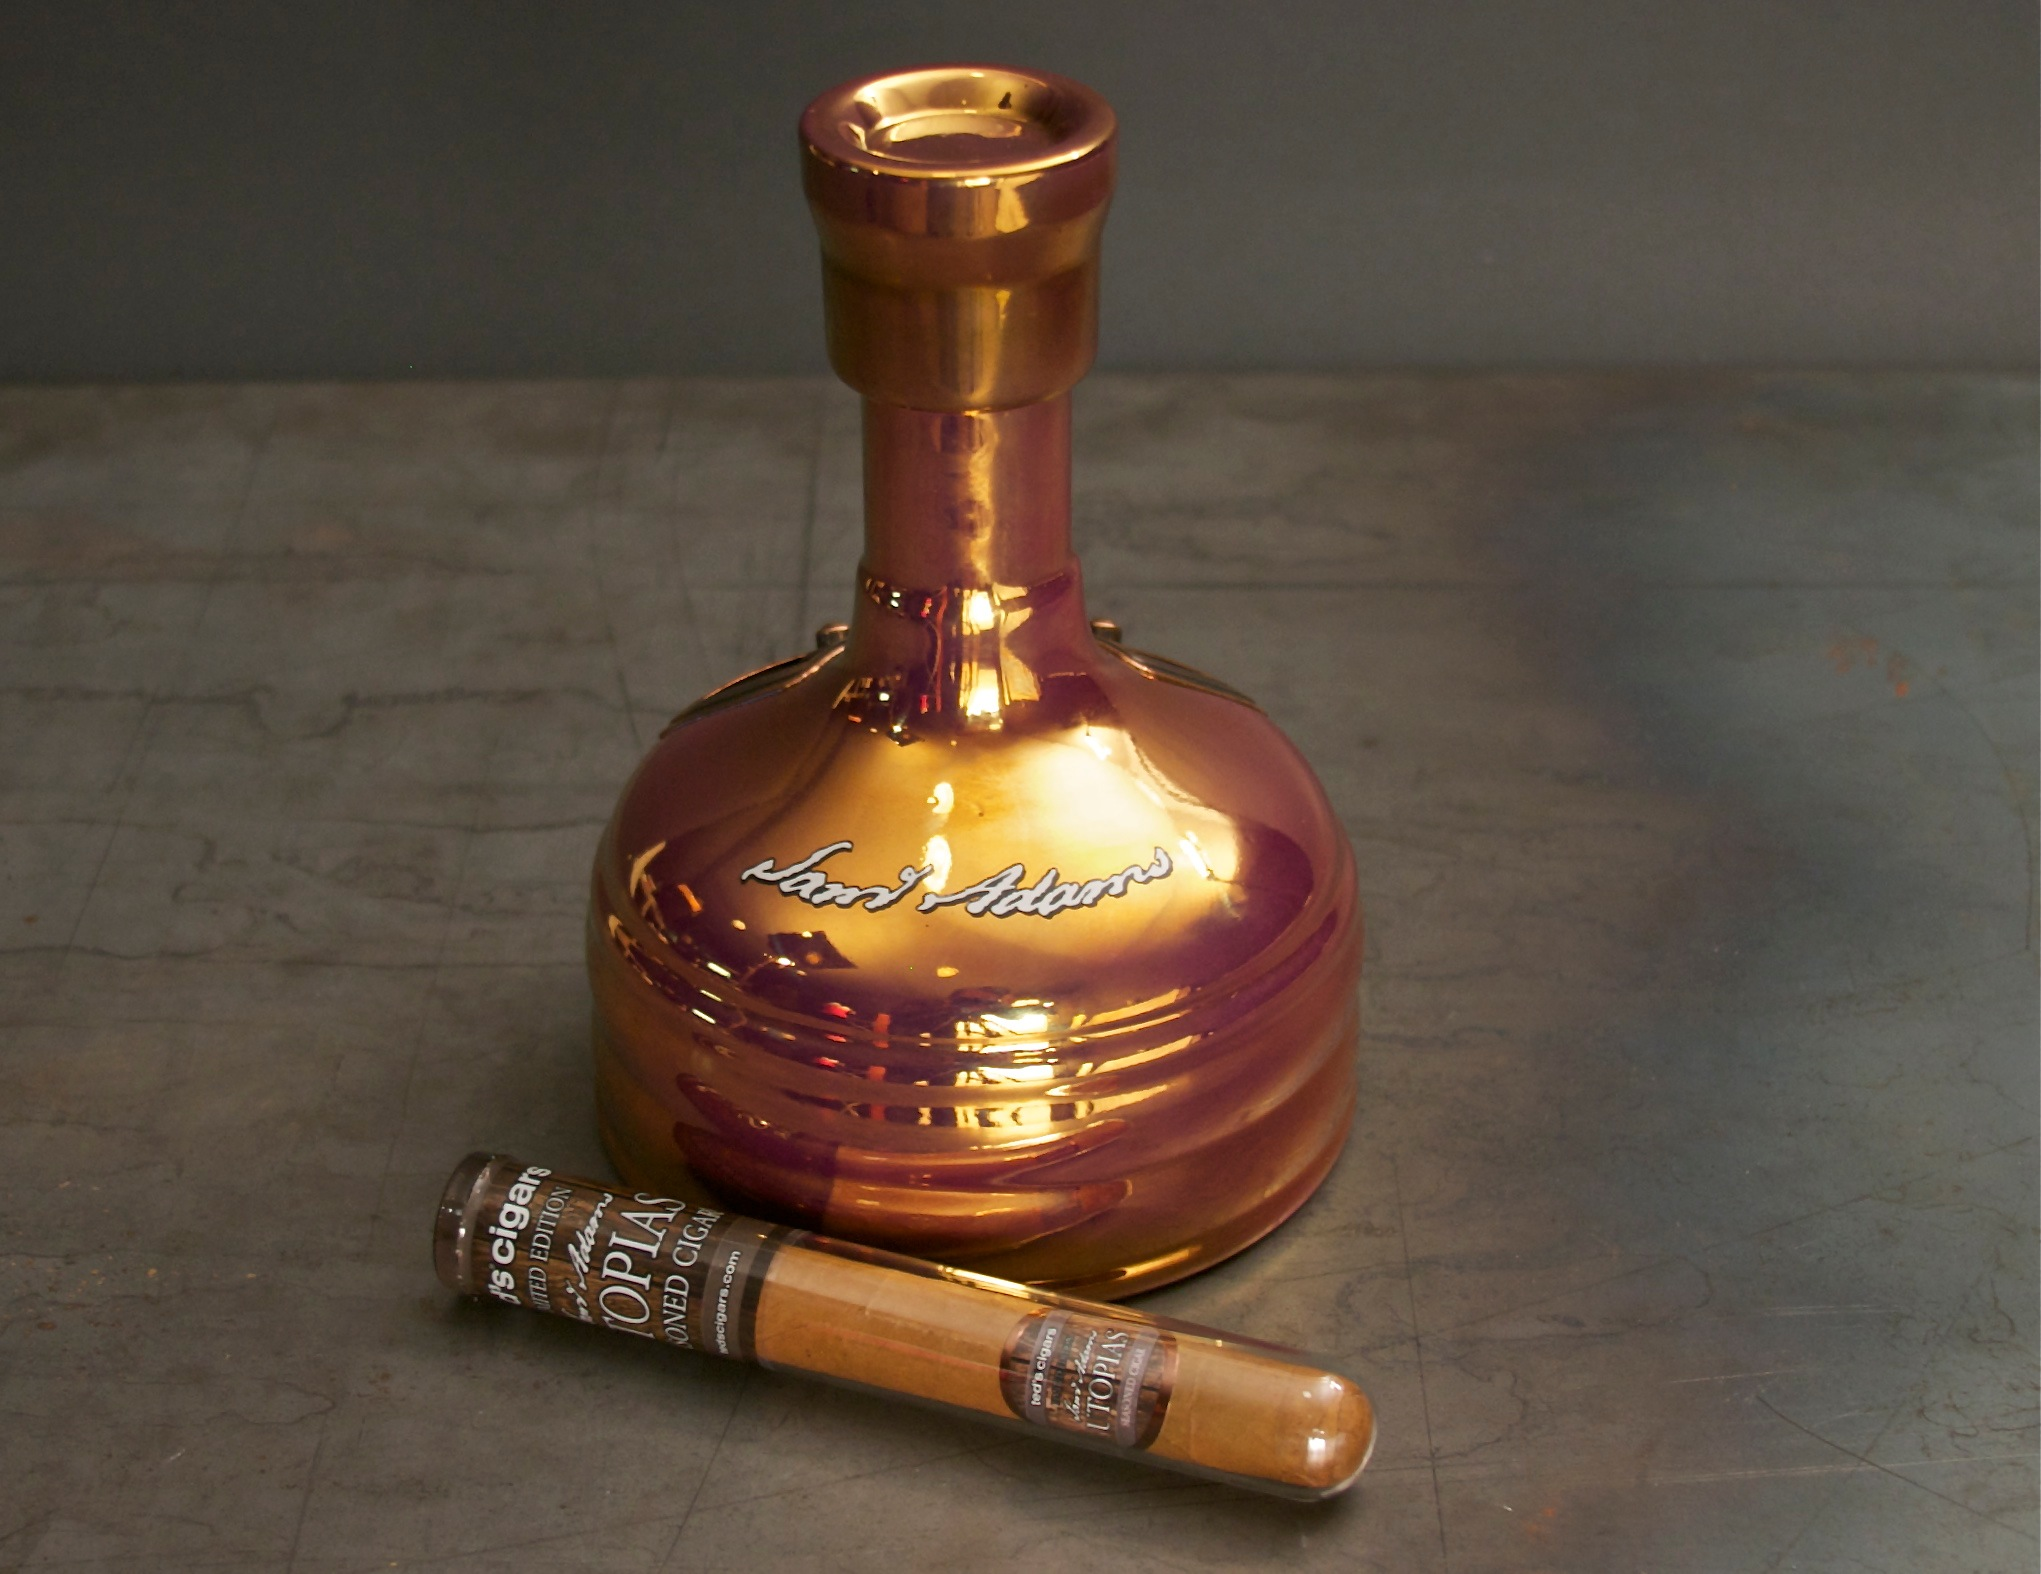 Ted's Sam Adams Utopias Bottle and Cigar